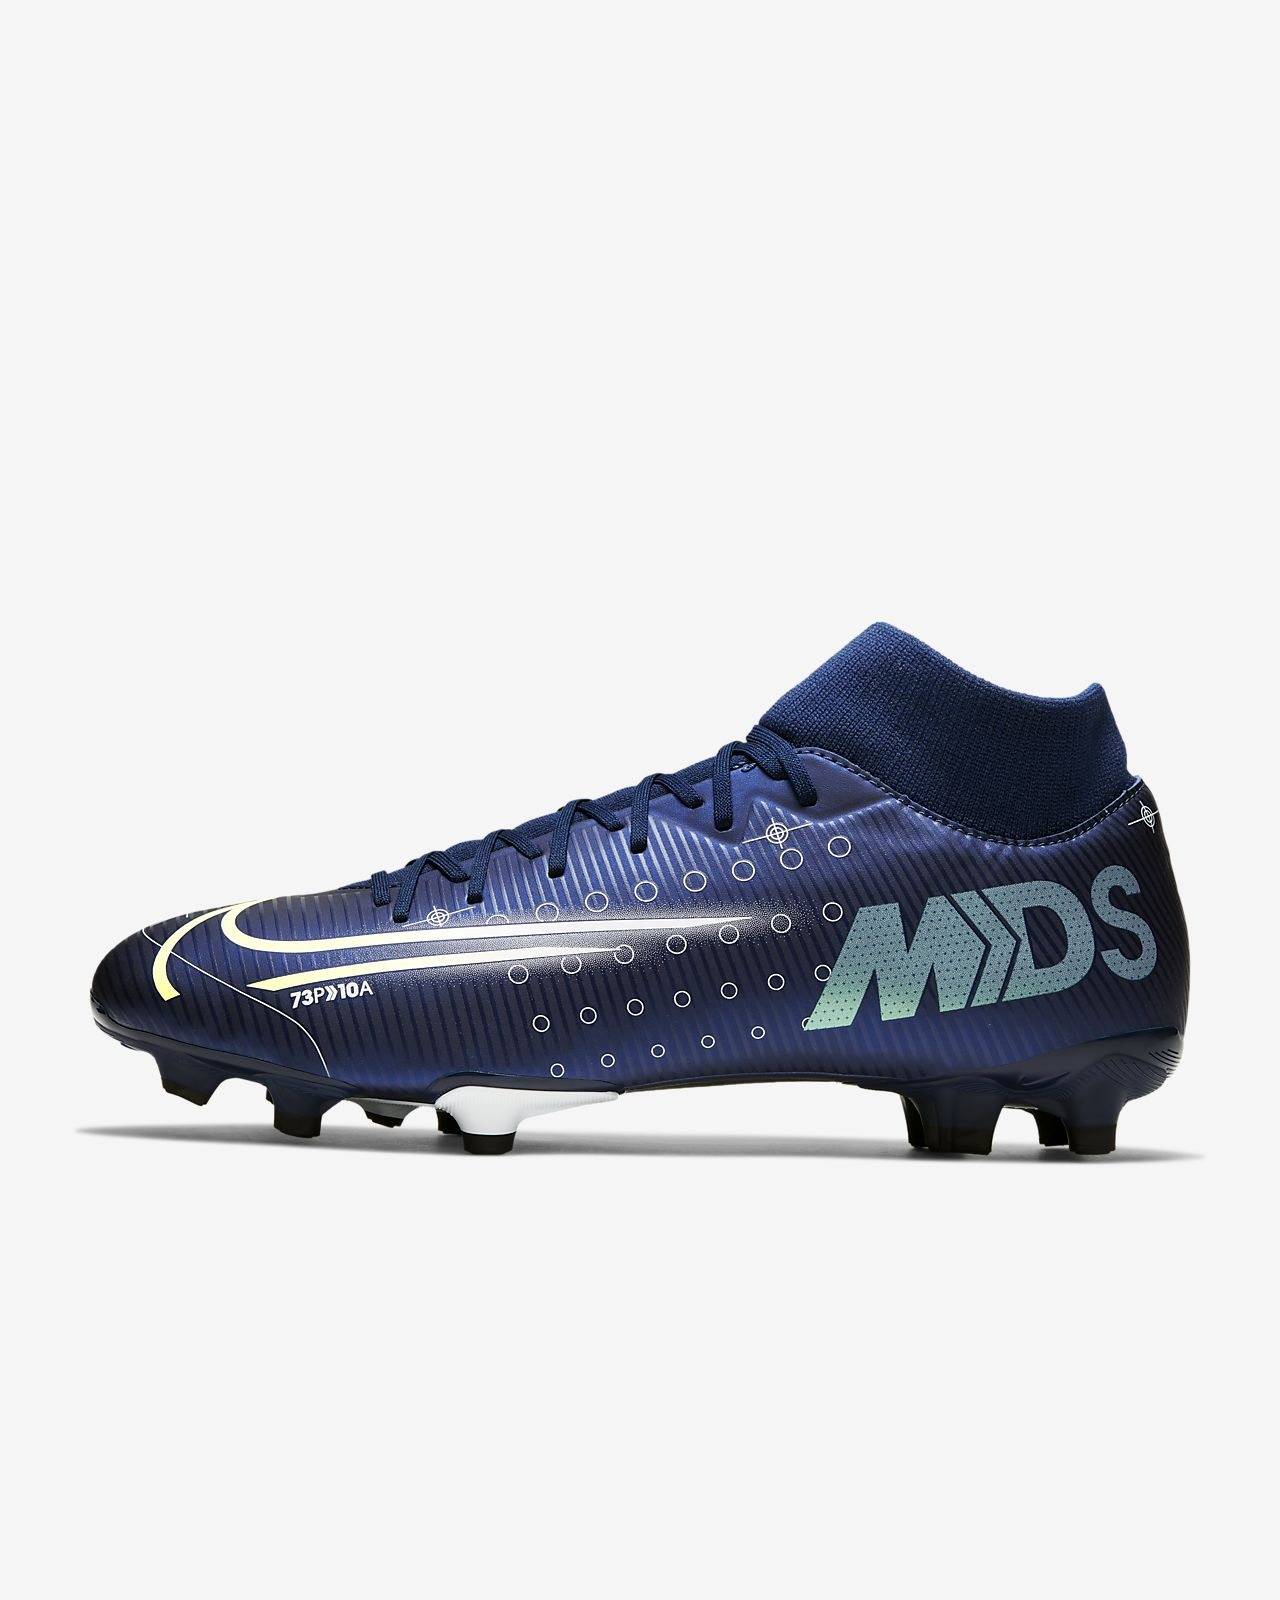 Chaussure de football multi-surfaces à crampons Nike Mercurial Superfly 7 Academy MDS MG